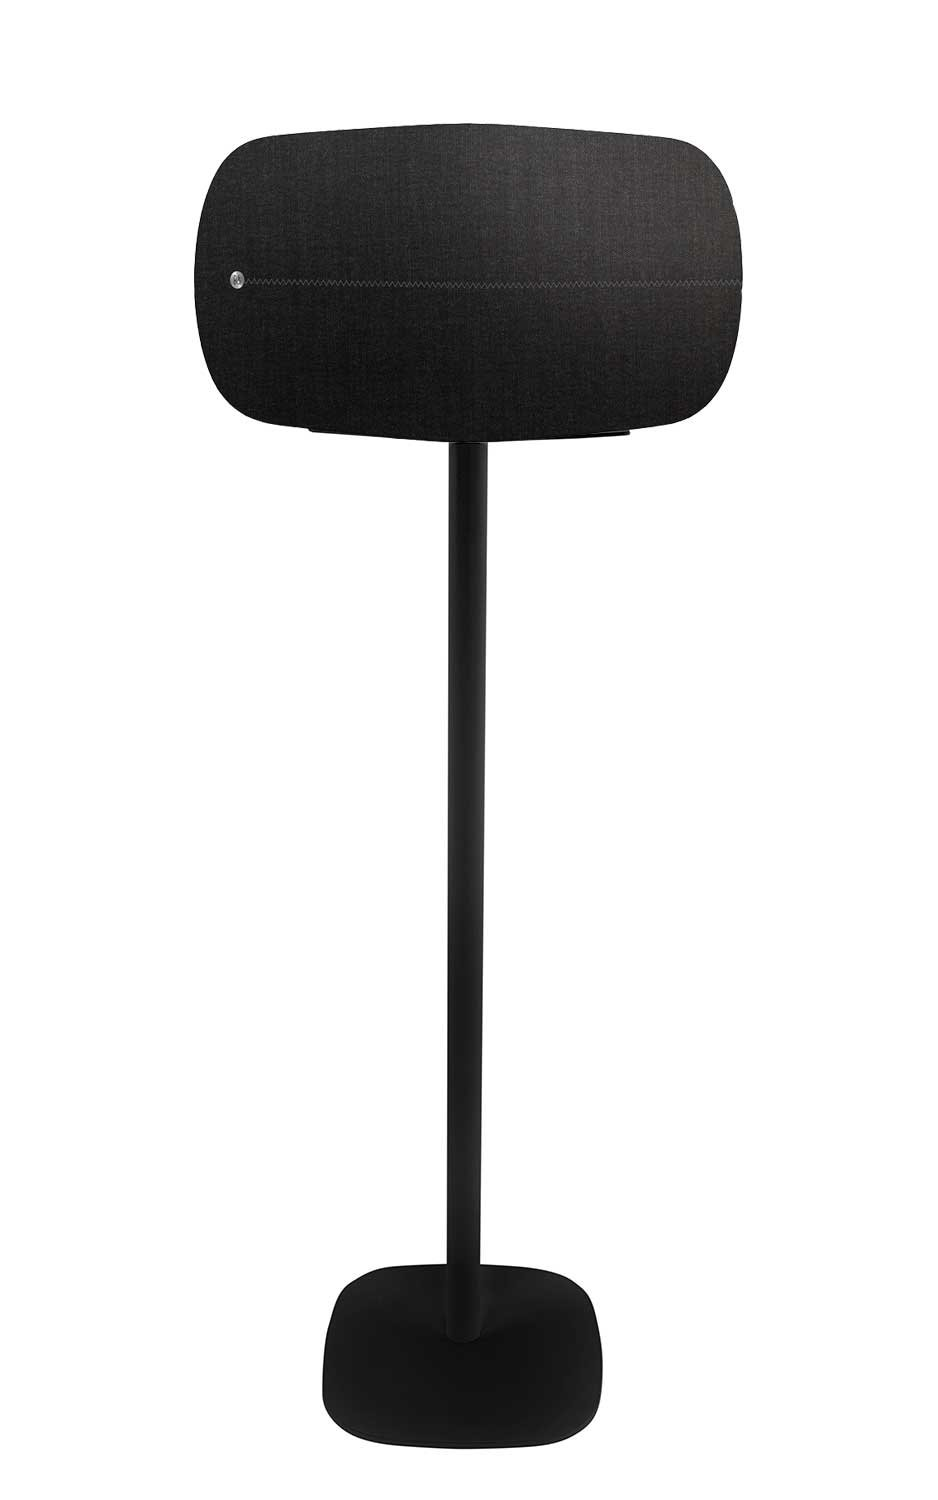 Vebos floor stand B&O BeoPlay A6 black en optimal experience in every room - Allows you to place your B&O BeoPlay A6 exactly where you want it - Two years warranty